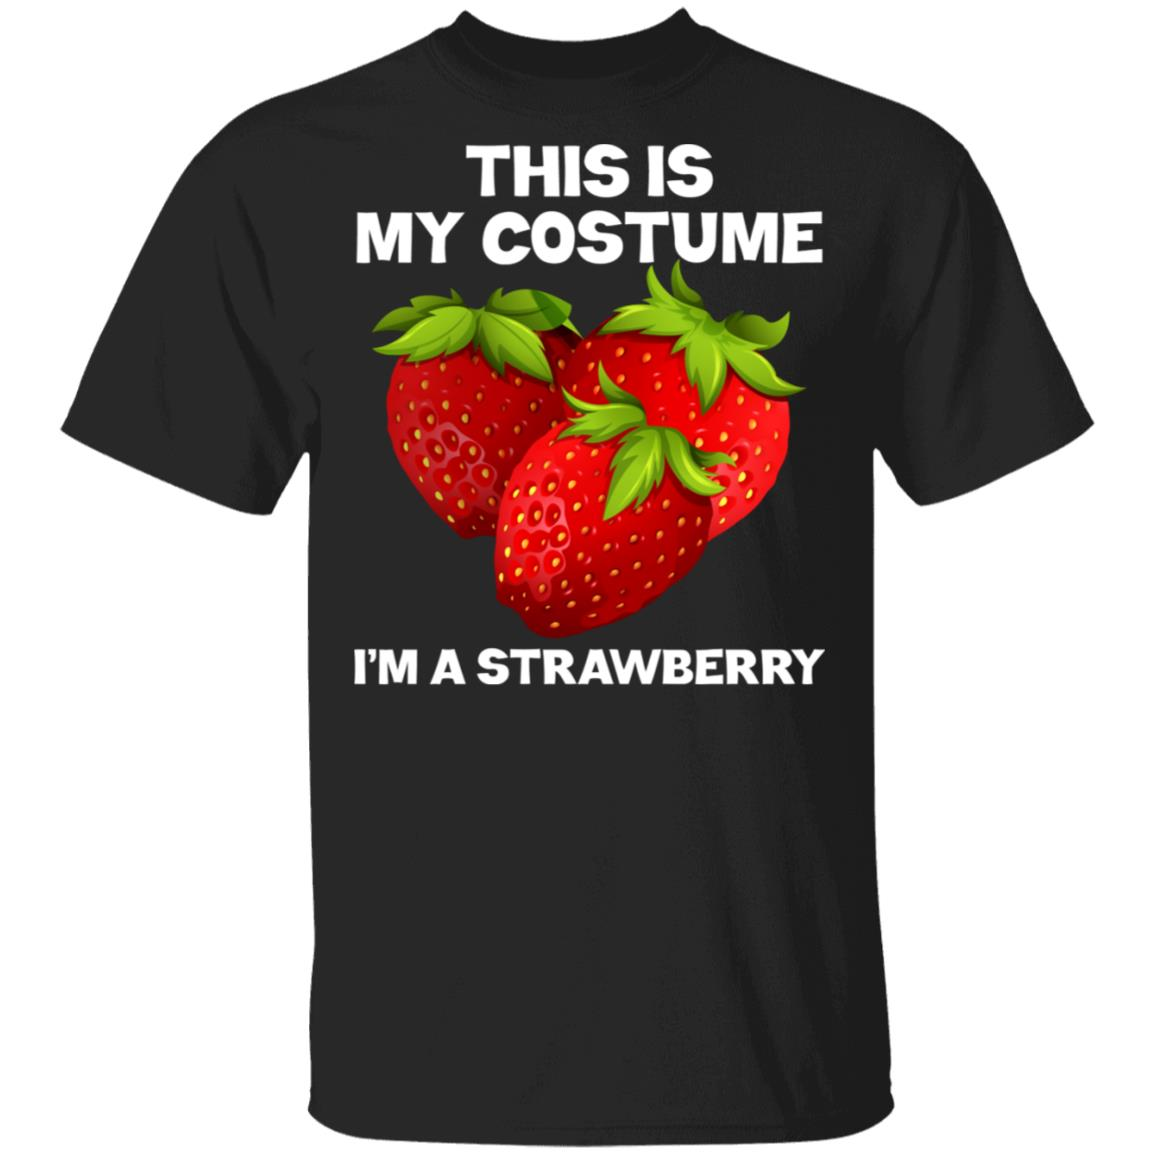 I'm A Strawberry This Is My Costume Unisex Short Sleeve